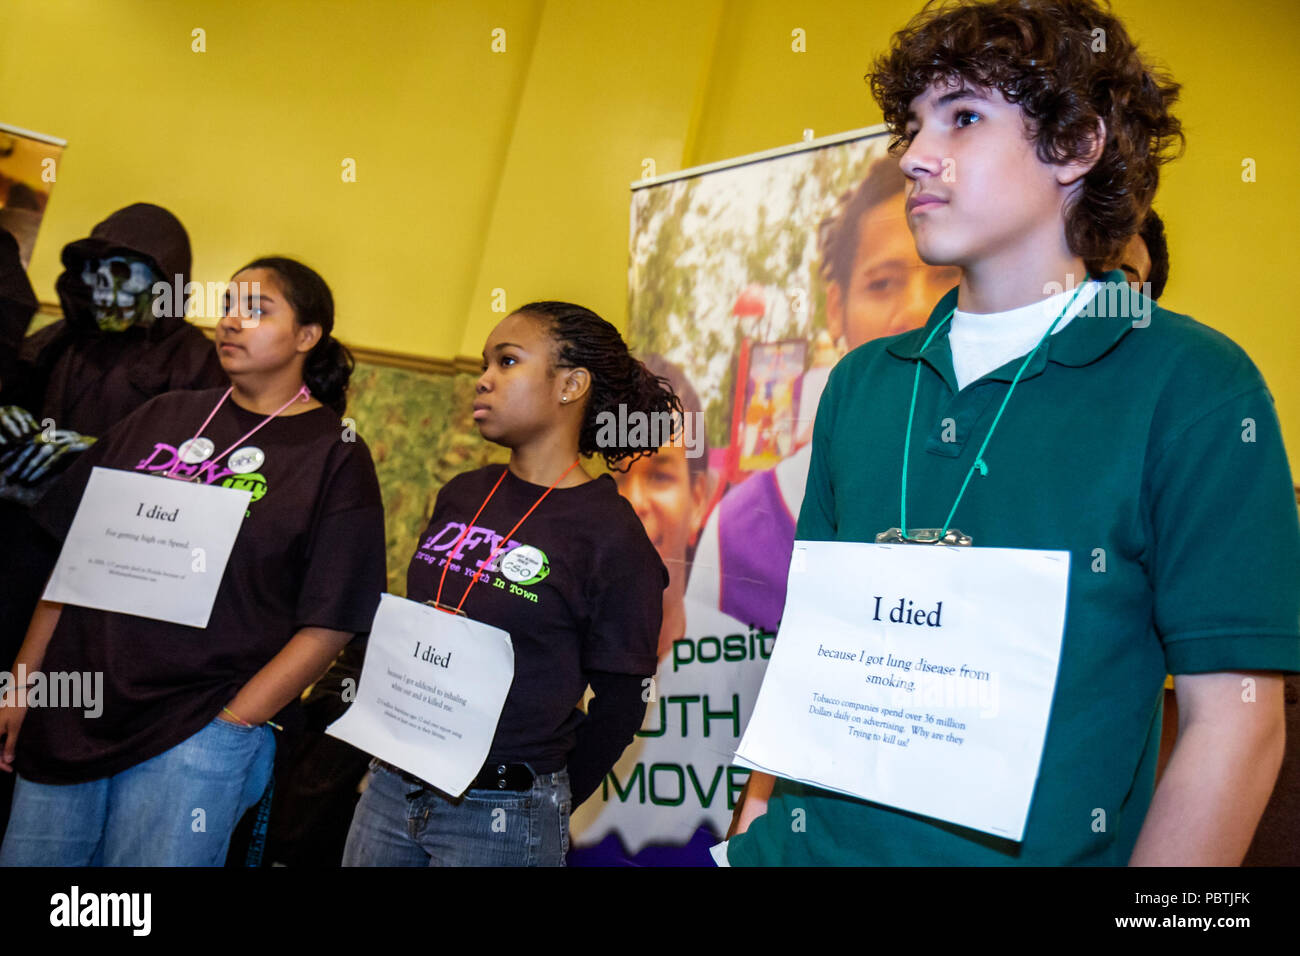 Miami Florida Leadership Training Conference DFYIT Drug Free Youth In Town anti addiction nonprofit organization student student - Stock Image